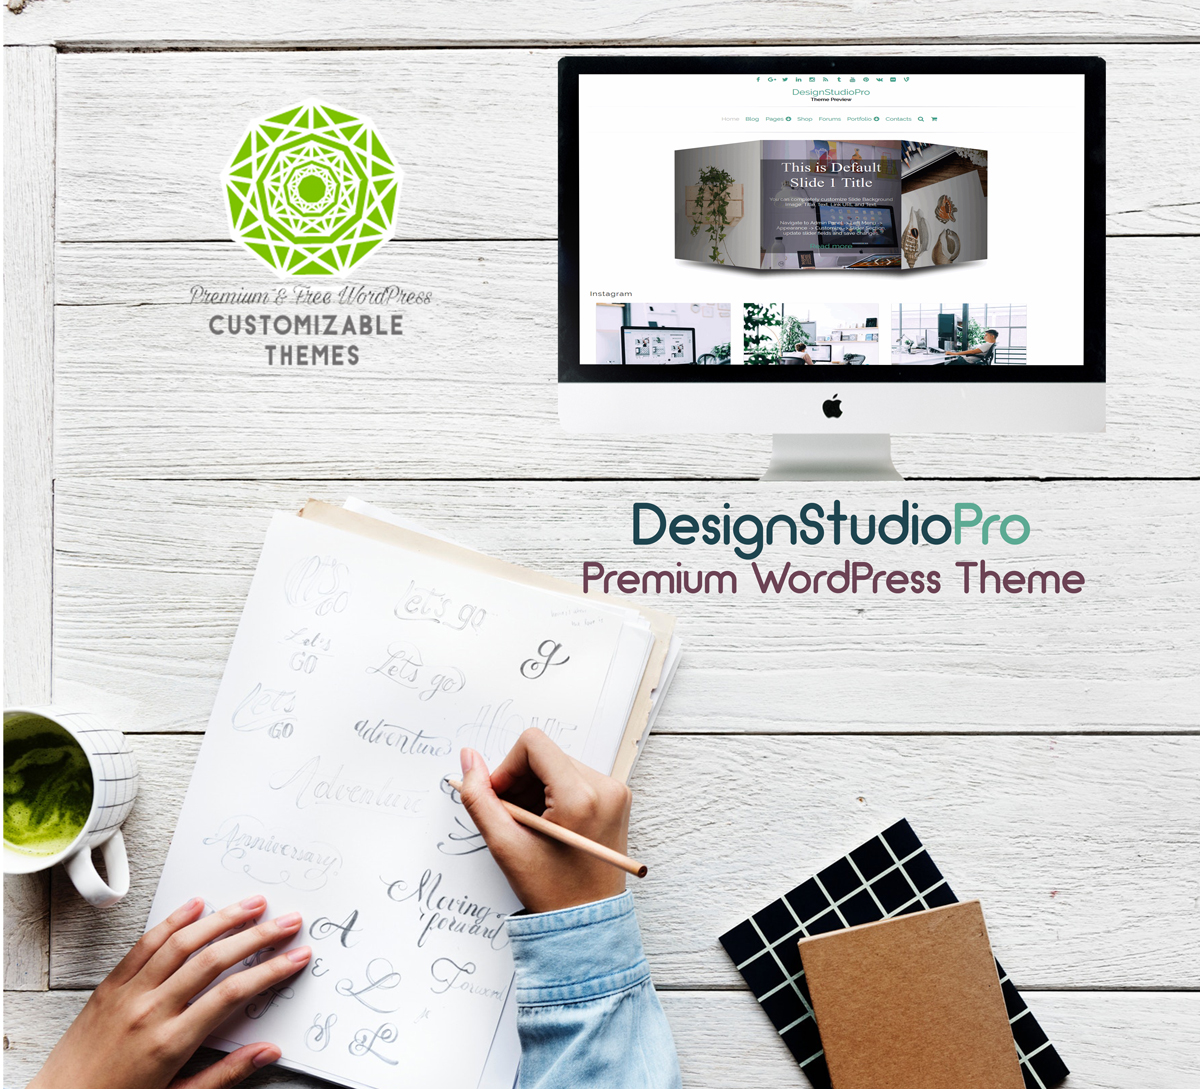 DesignStudioPro-premium-wordpress-themes-customizablethemes